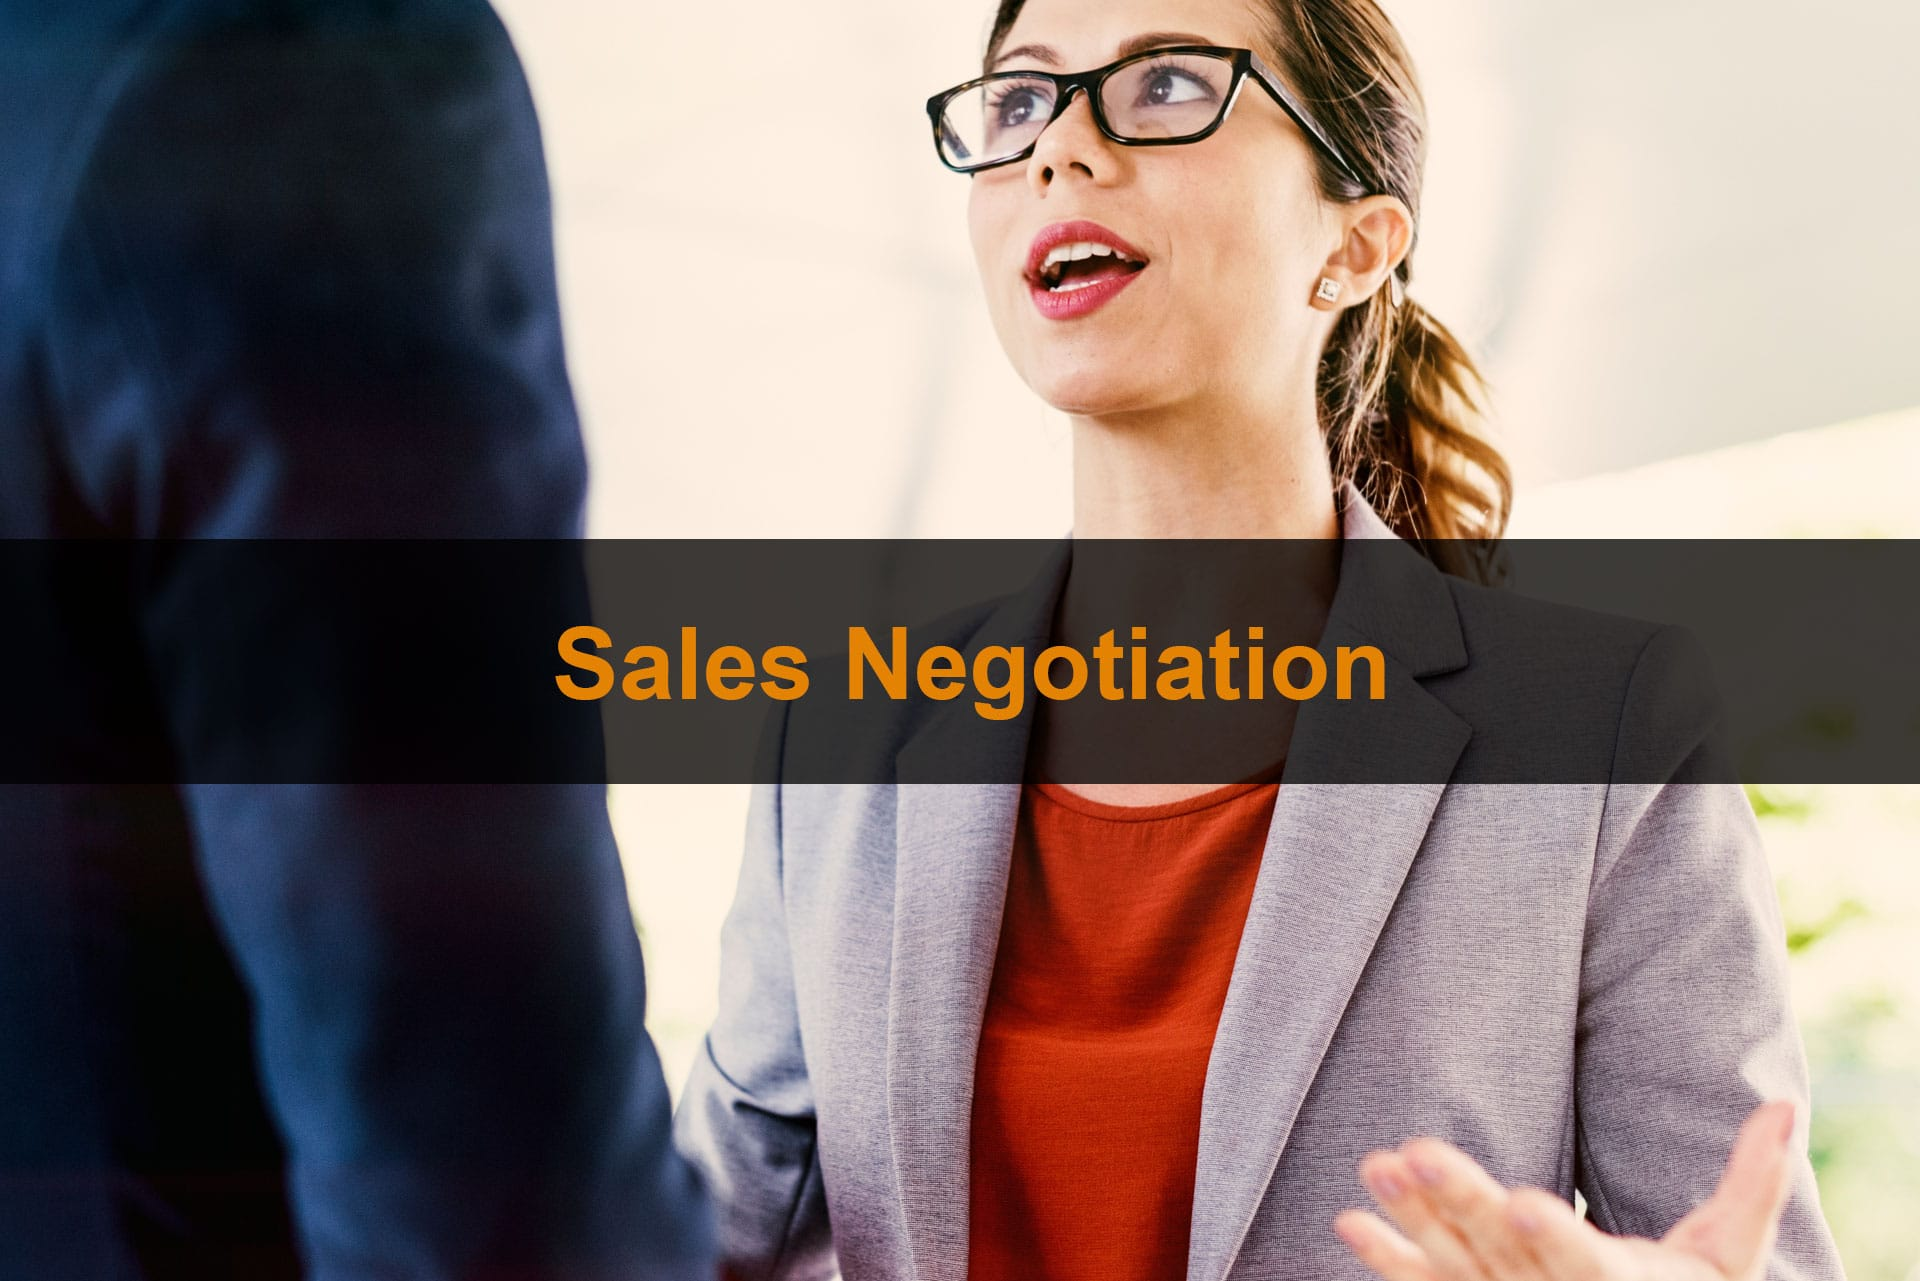 Sales-Negotiation-Artwork-2019-jpg-min